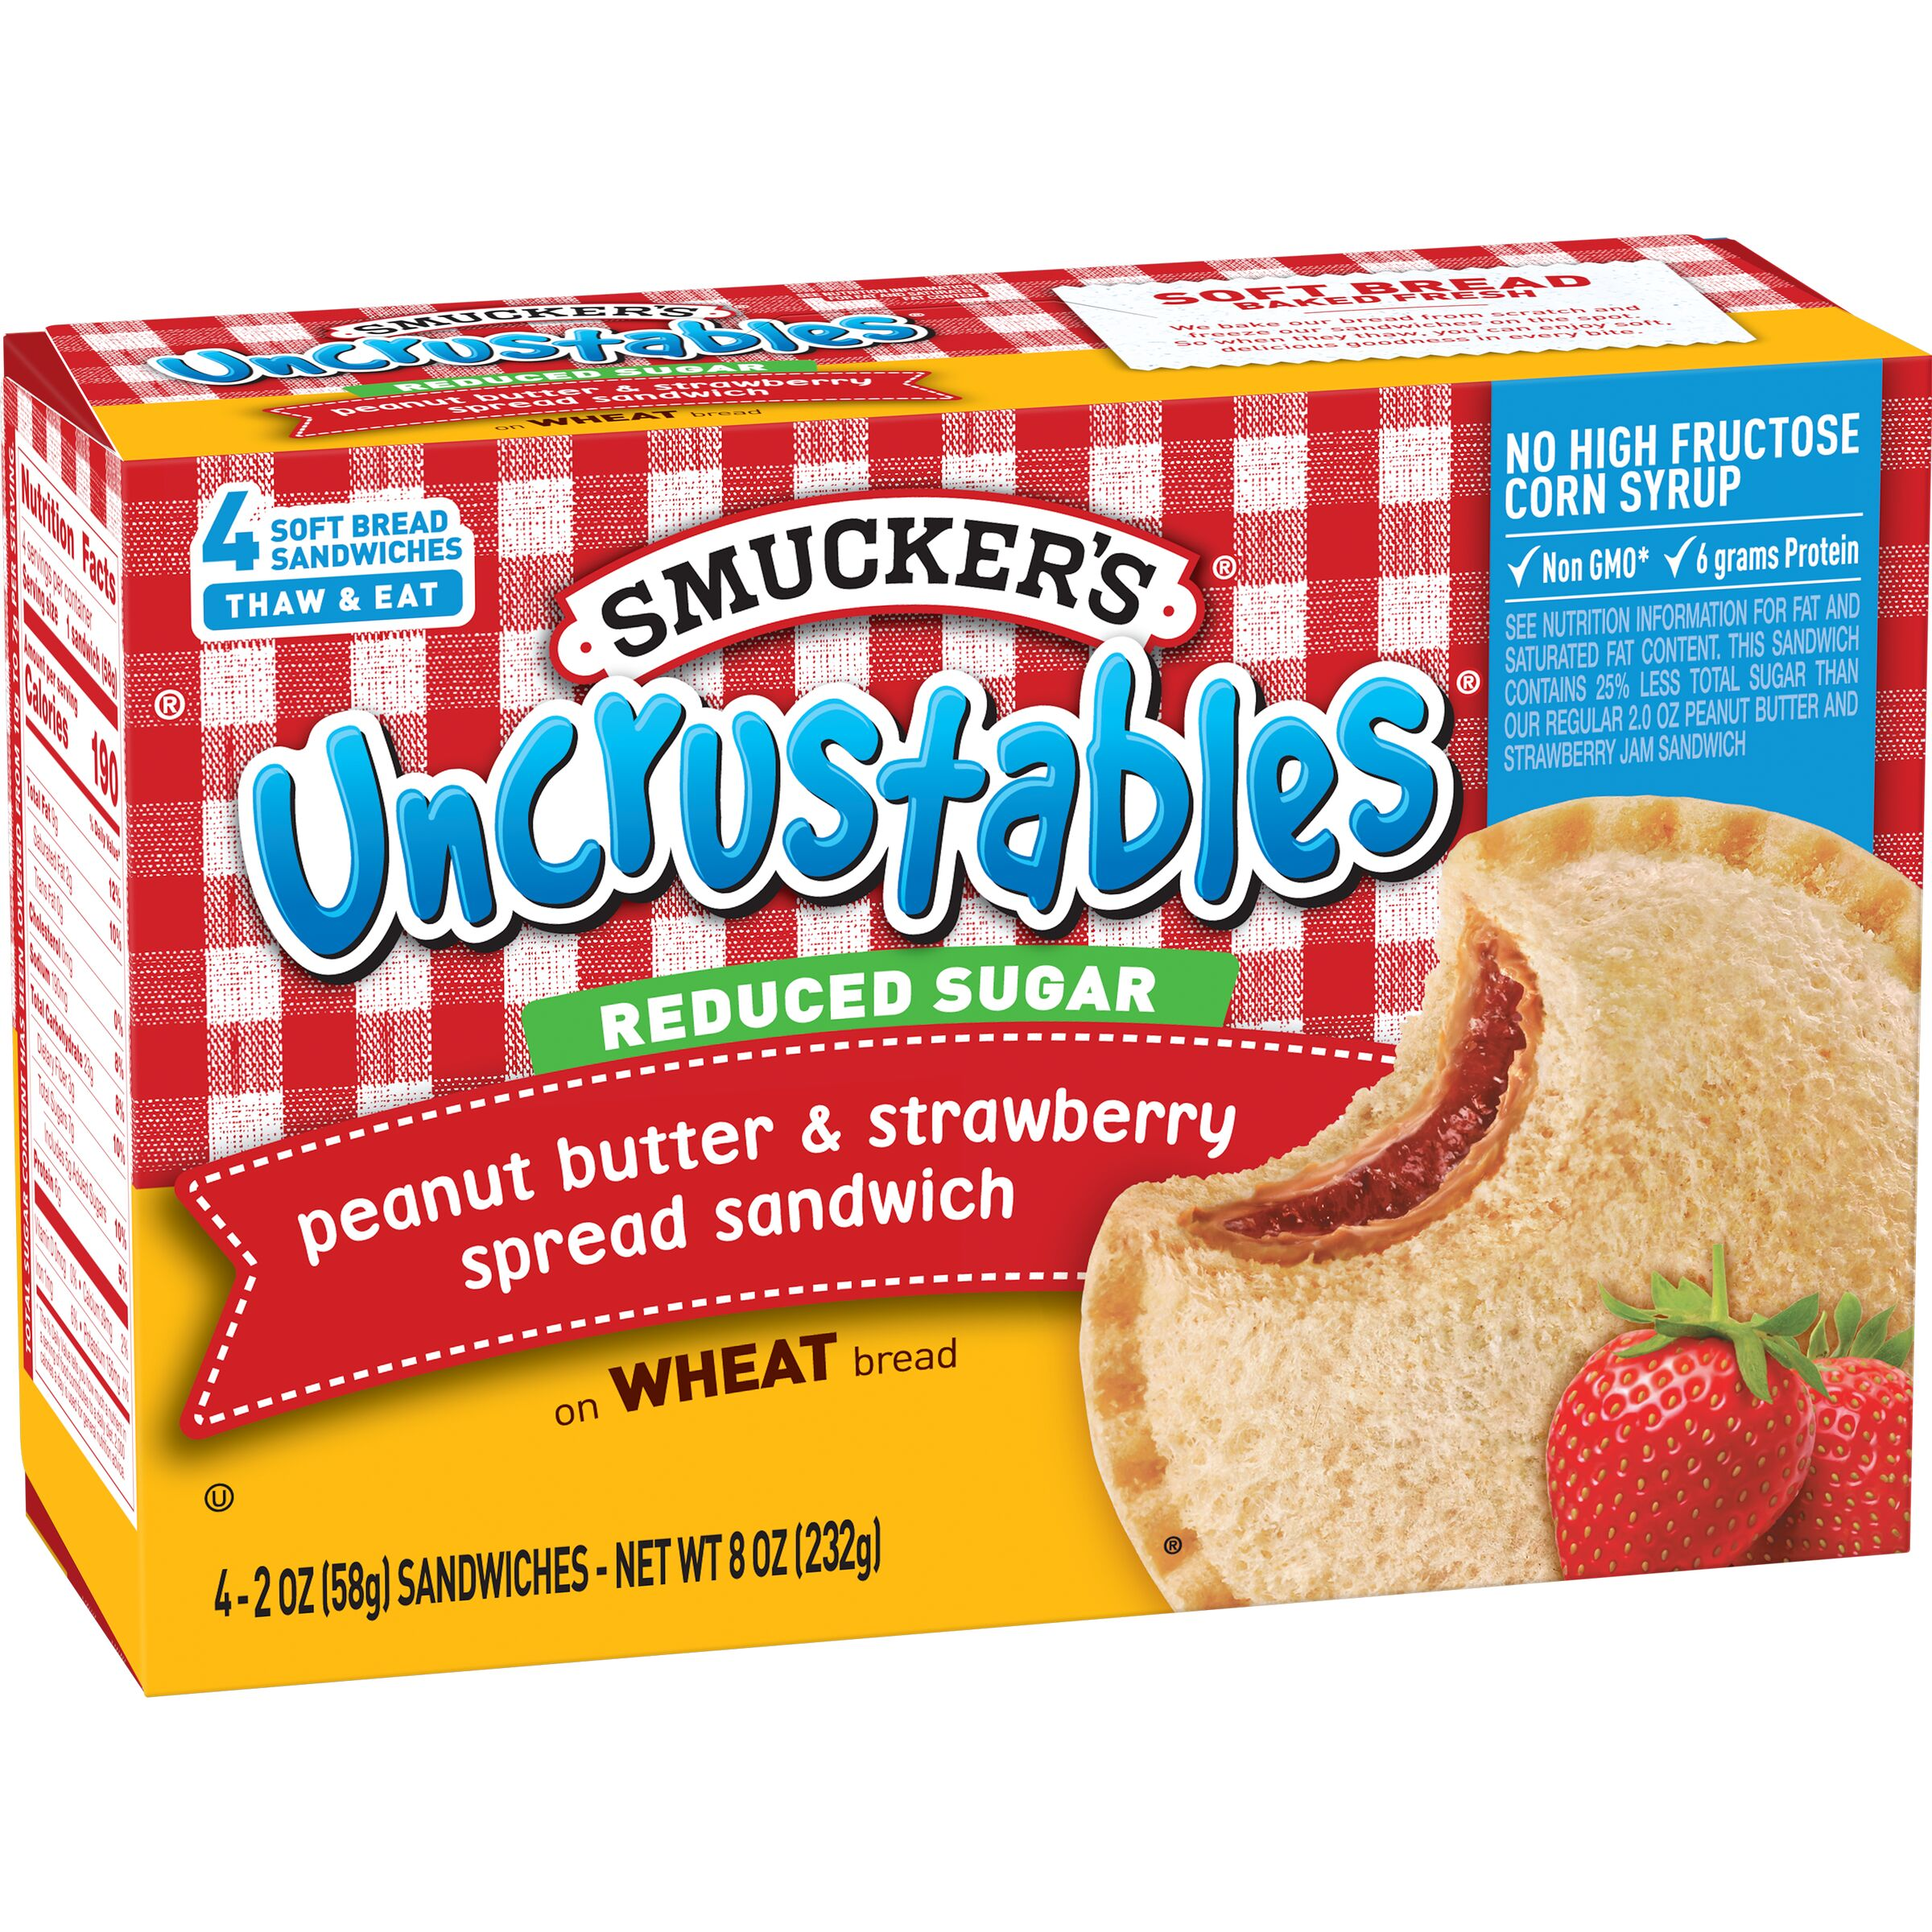 Smucker's Uncrustables Reduced Sugar Peanut Butter & Strawberry Spread Sandwich on Whole Wheat